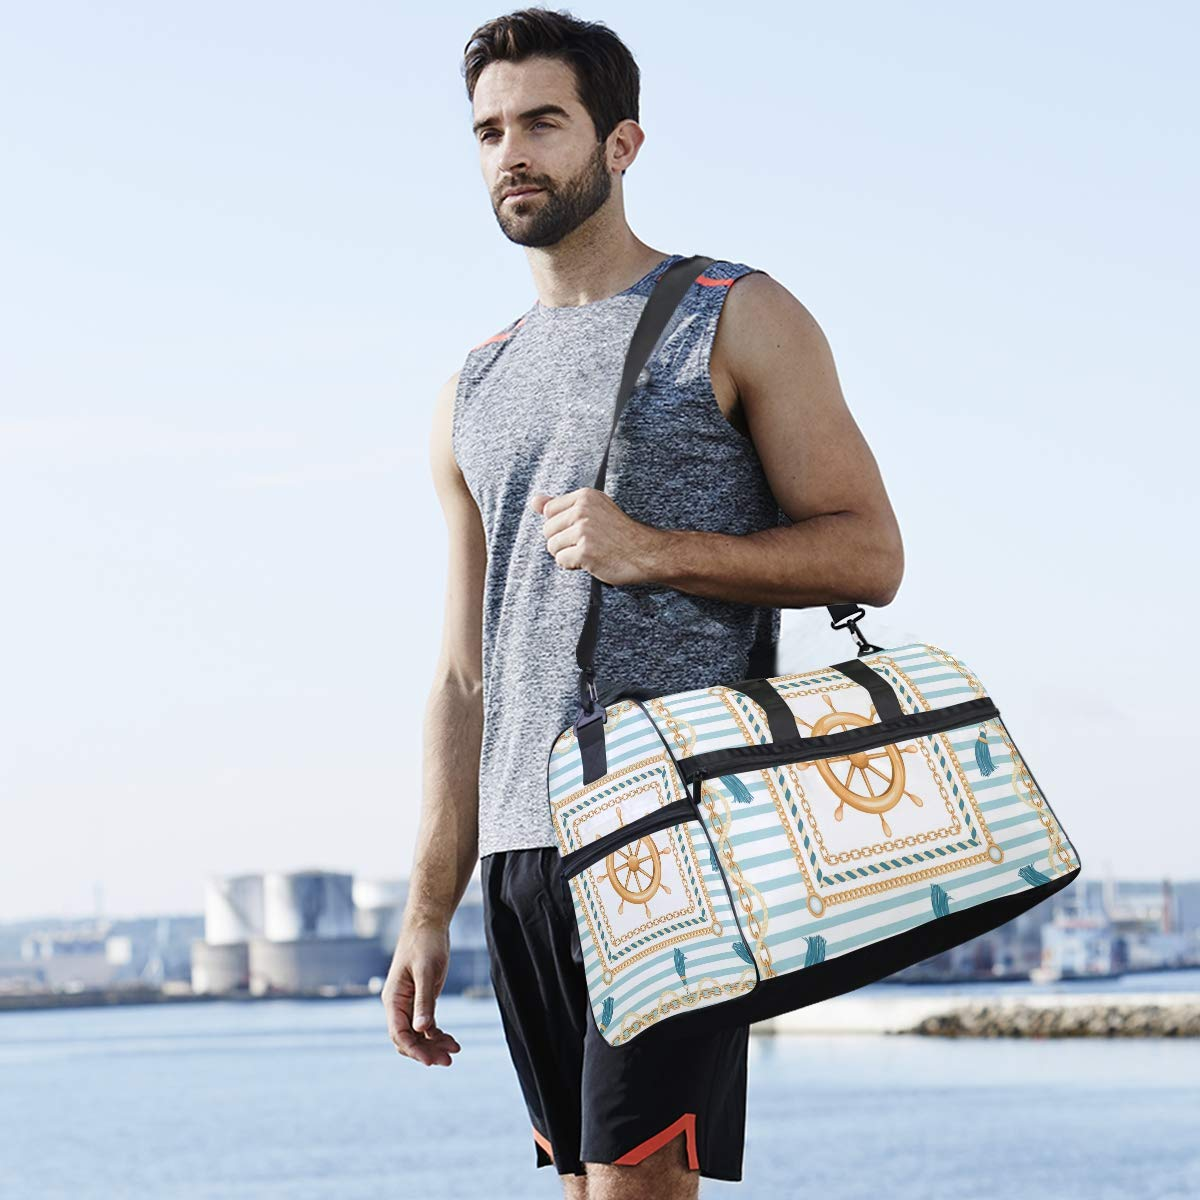 Gym Vacation Travel Duffel Bag Ship Wheel And Marine Stripes Waterproof Lightweight Luggage bag for Sports